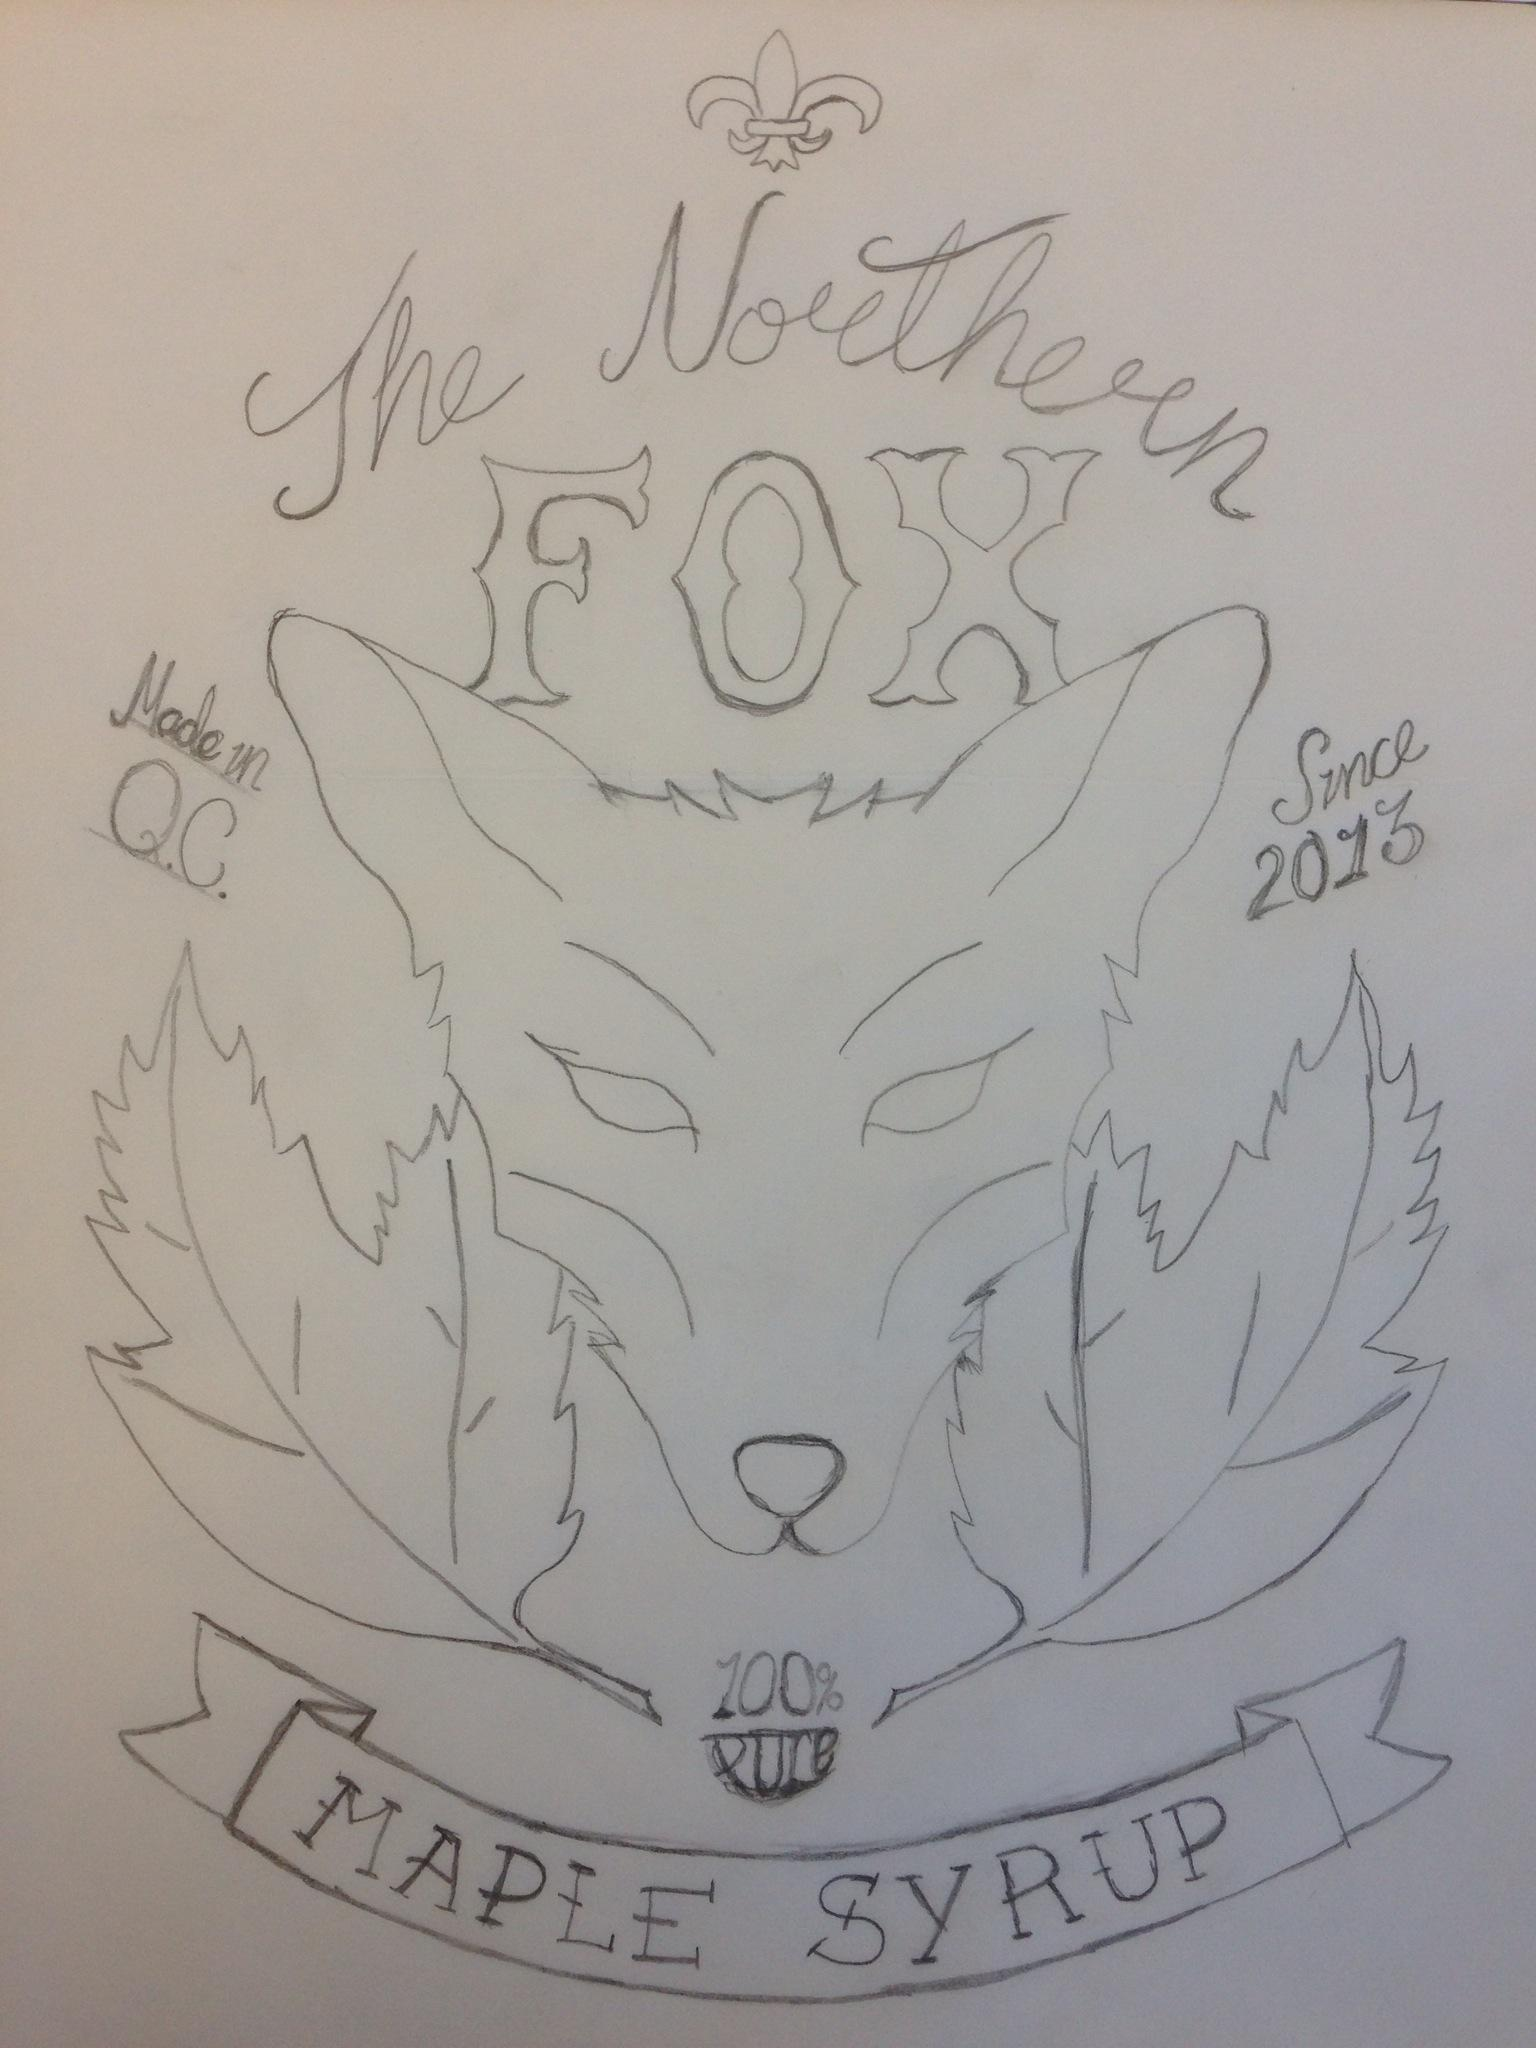 The Northern Fox (Maple Syrup) - image 10 - student project